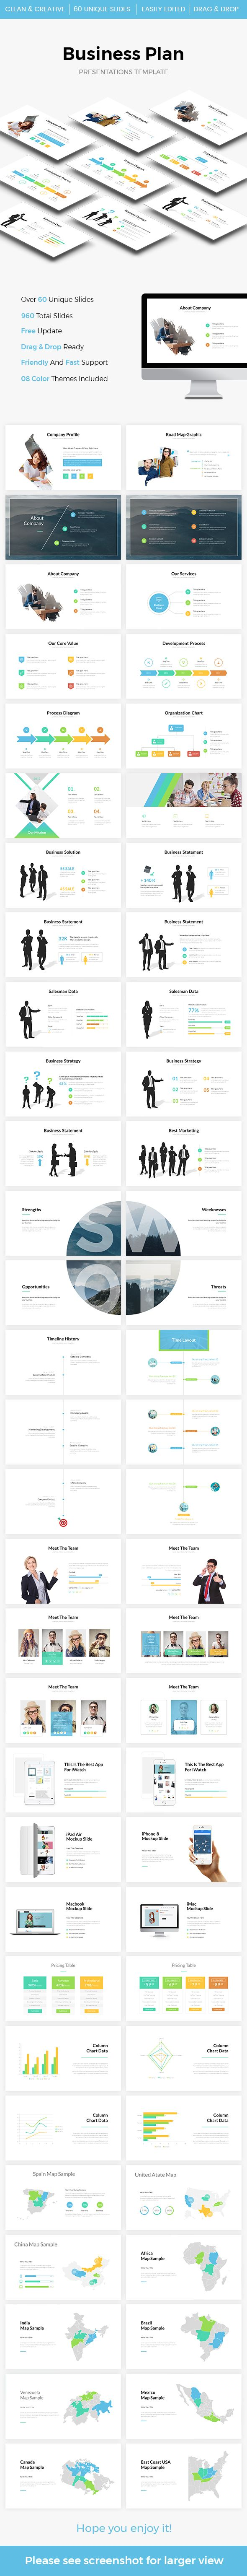 Business Plan Powerpoint Template - #PowerPoint Templates Presentation Templates